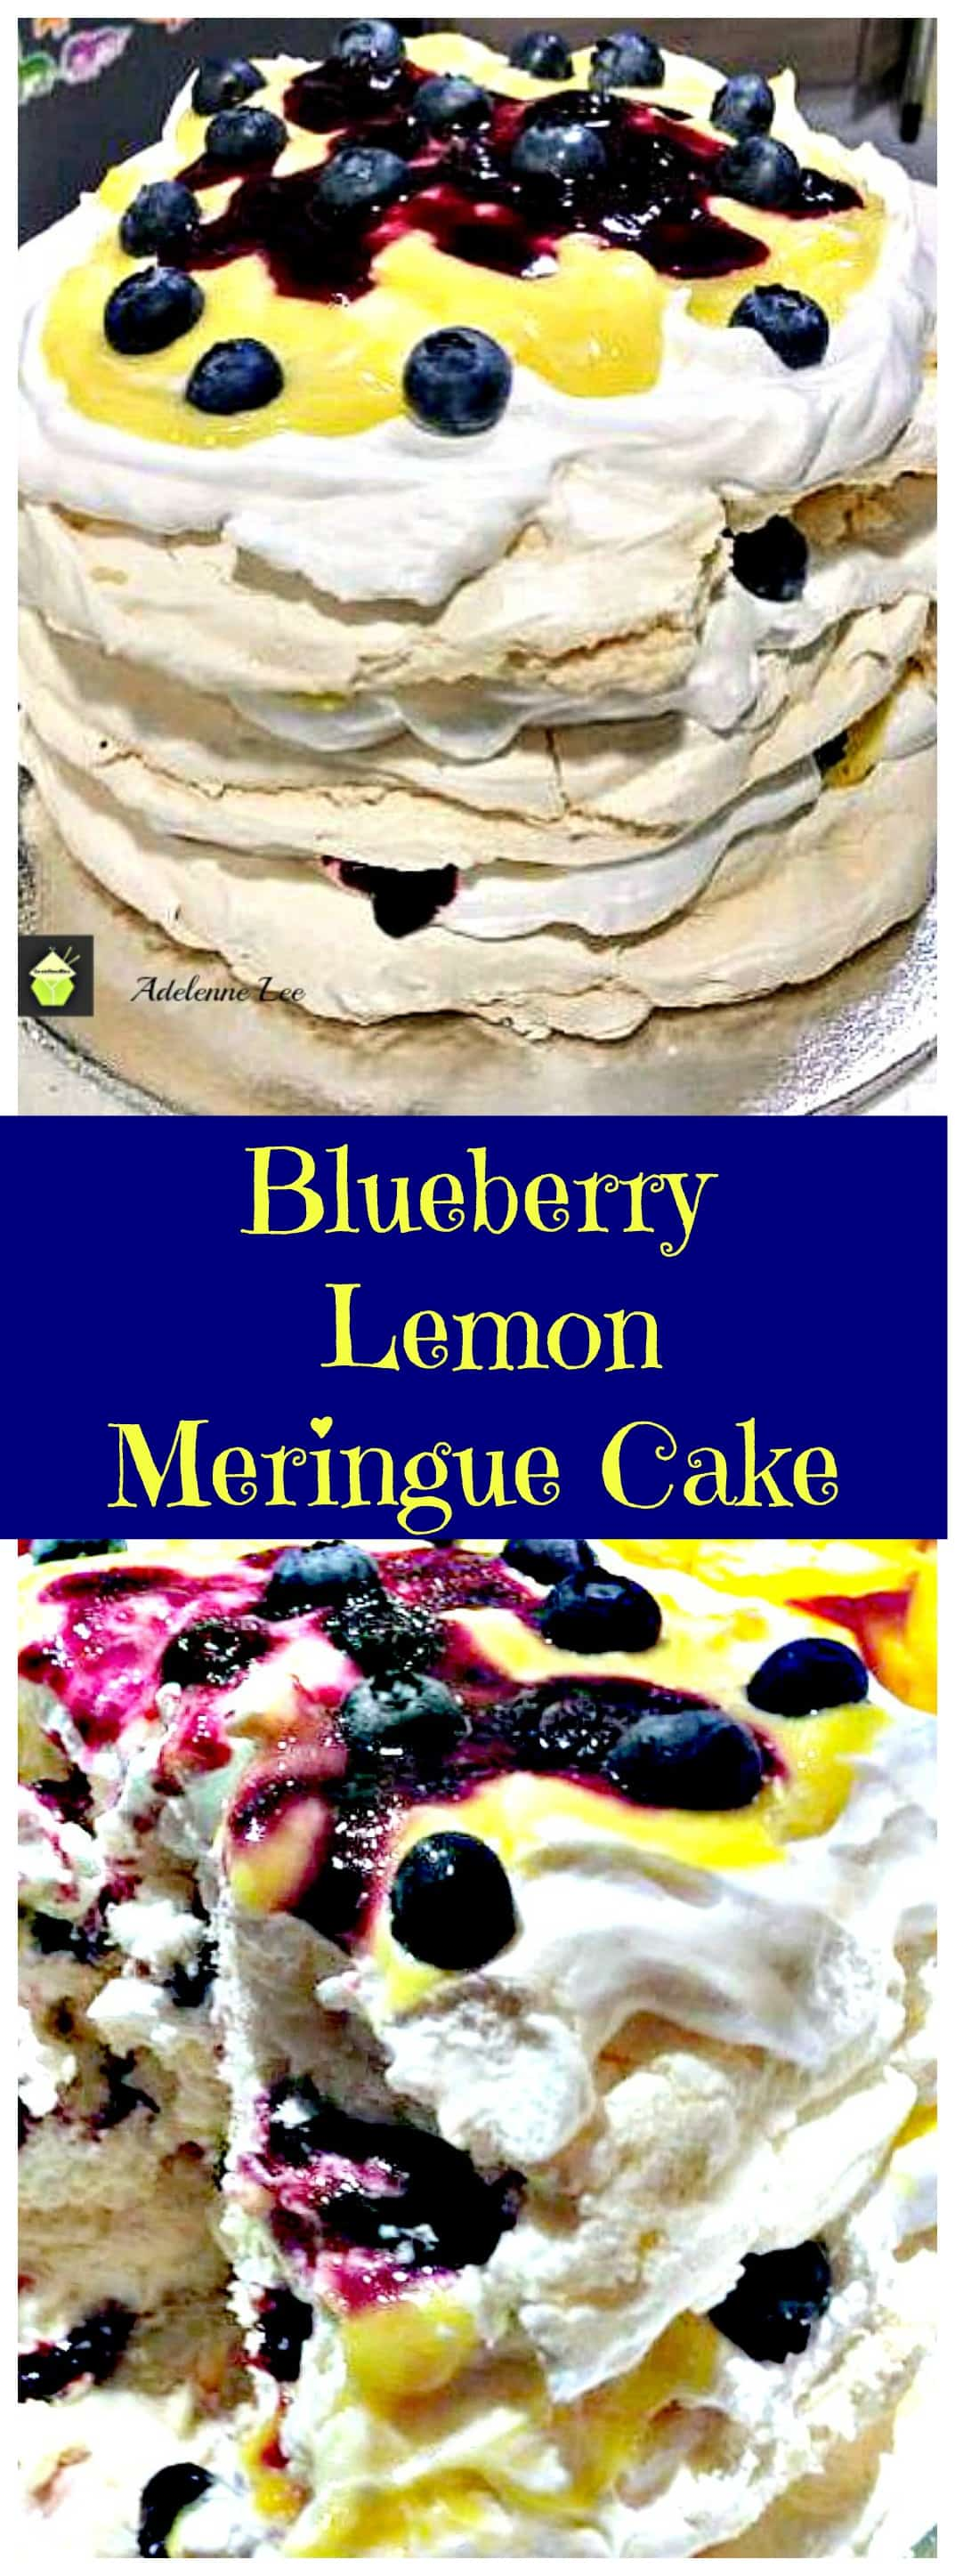 Blueberry & Lemon Meringue Cake. A wonderful chilled dessert perfect for a party!